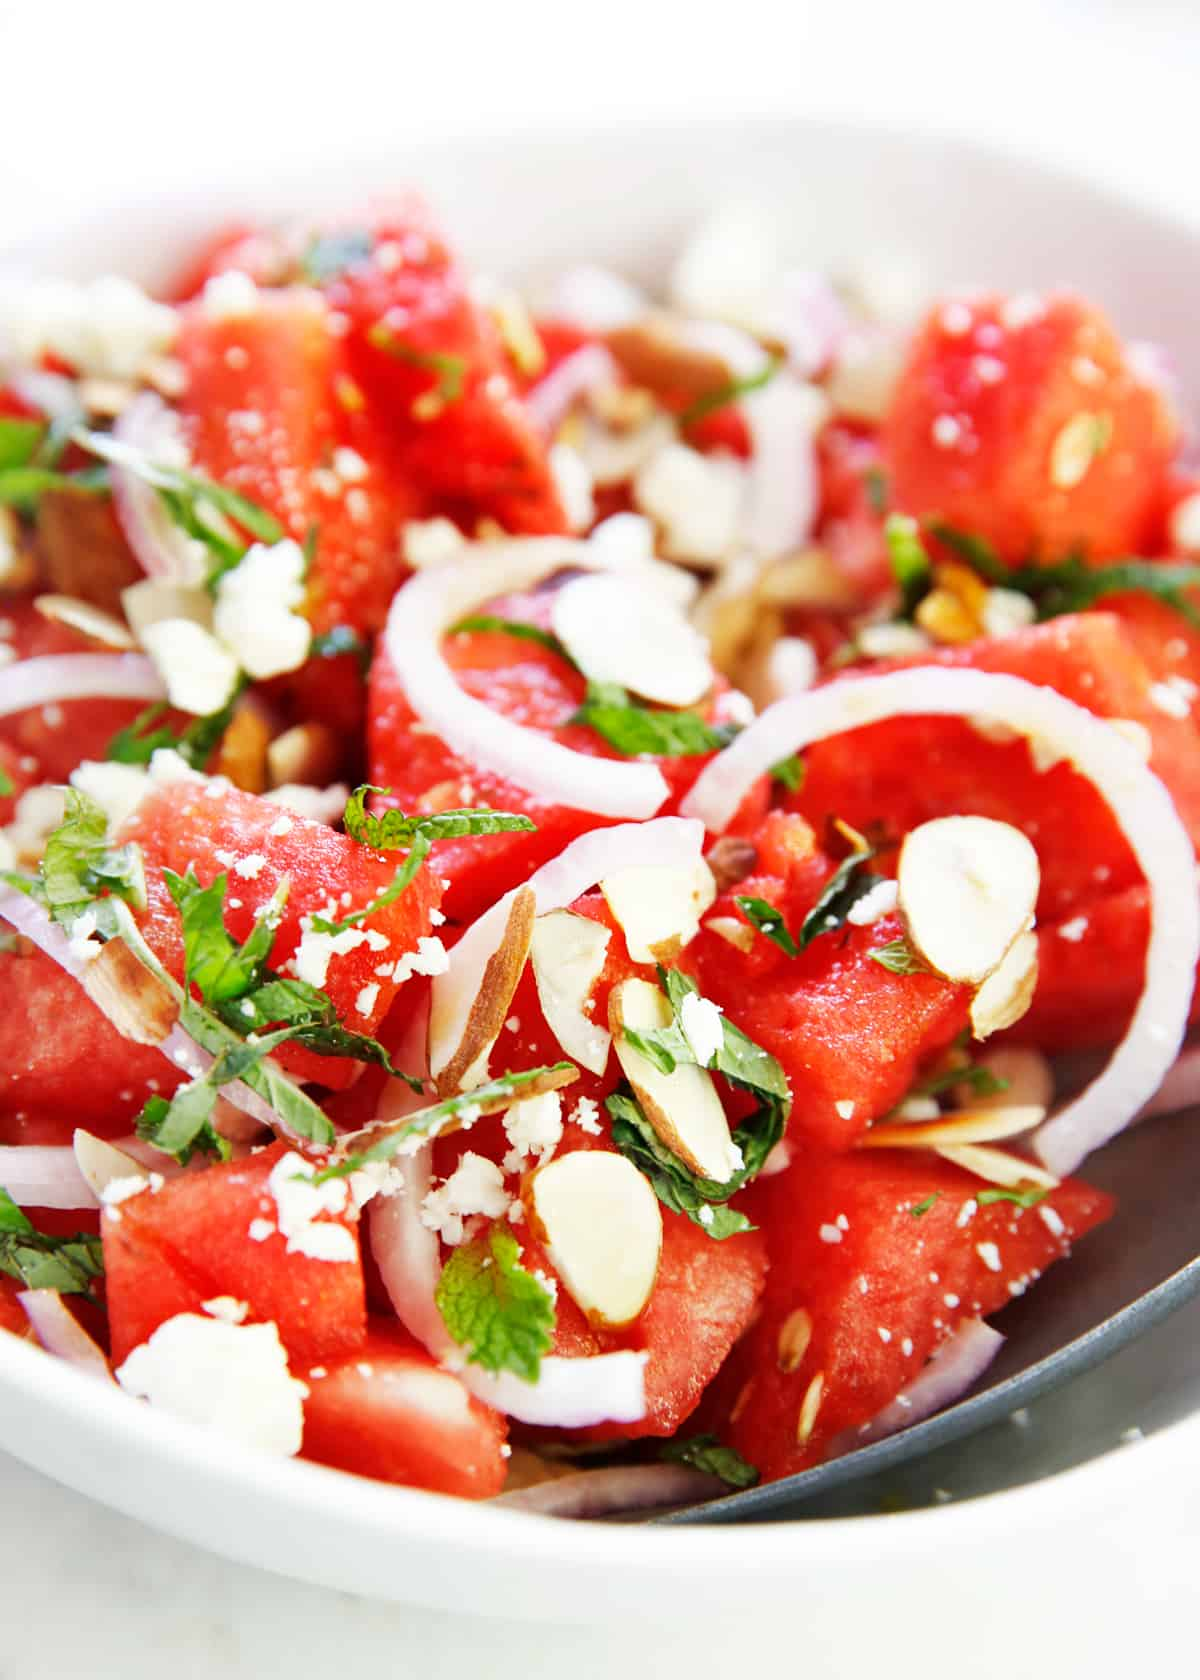 A dish of easy watermelon salad.